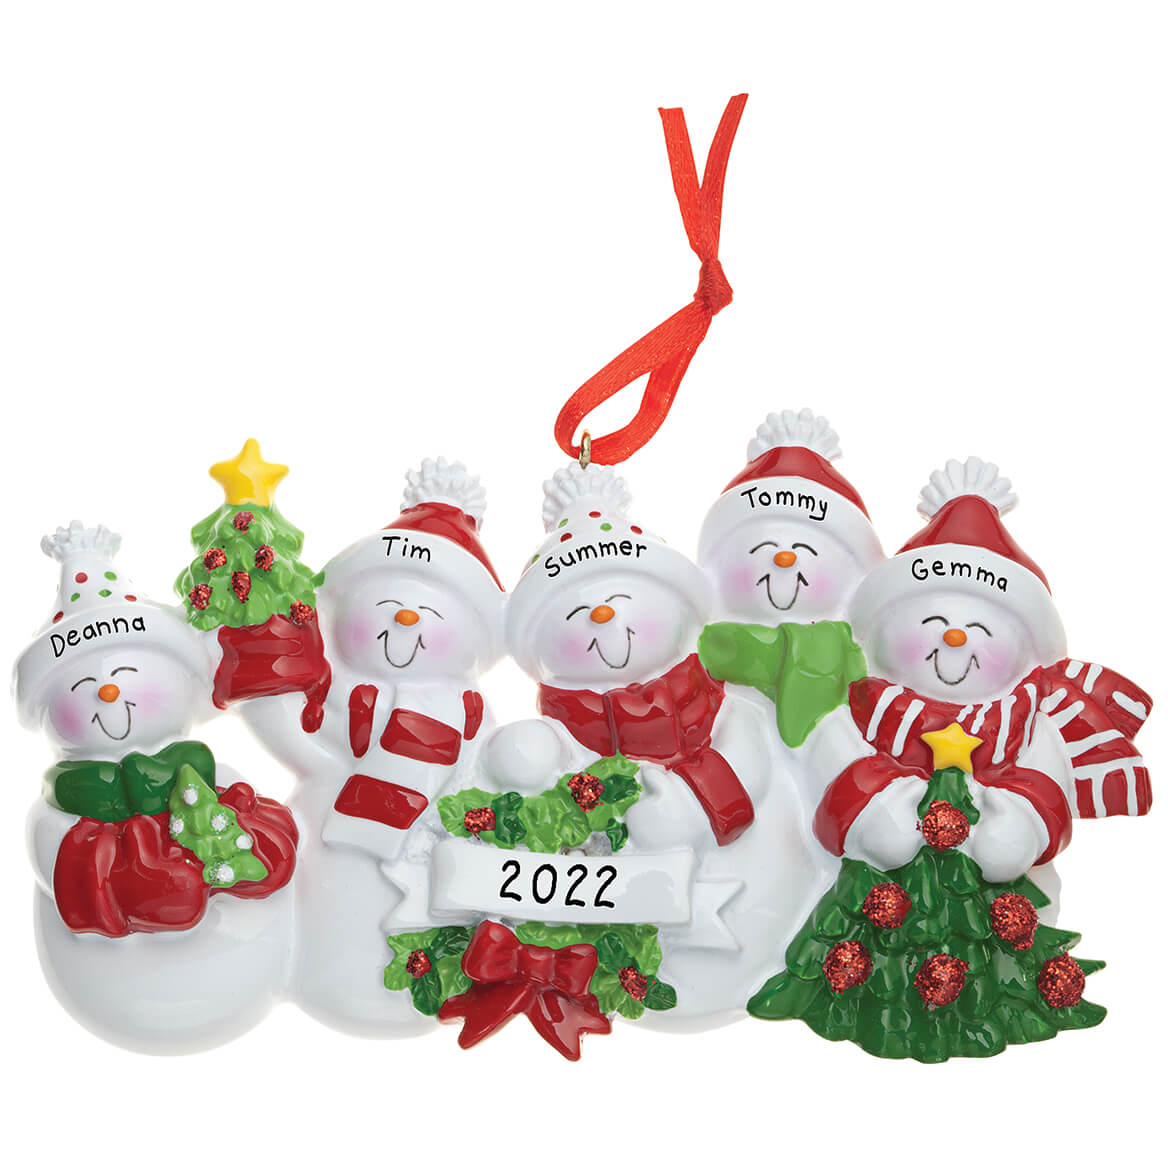 Baptism Ornament Personalized Christmas By Personalizedgallery: Personalized Snow Family Ornament